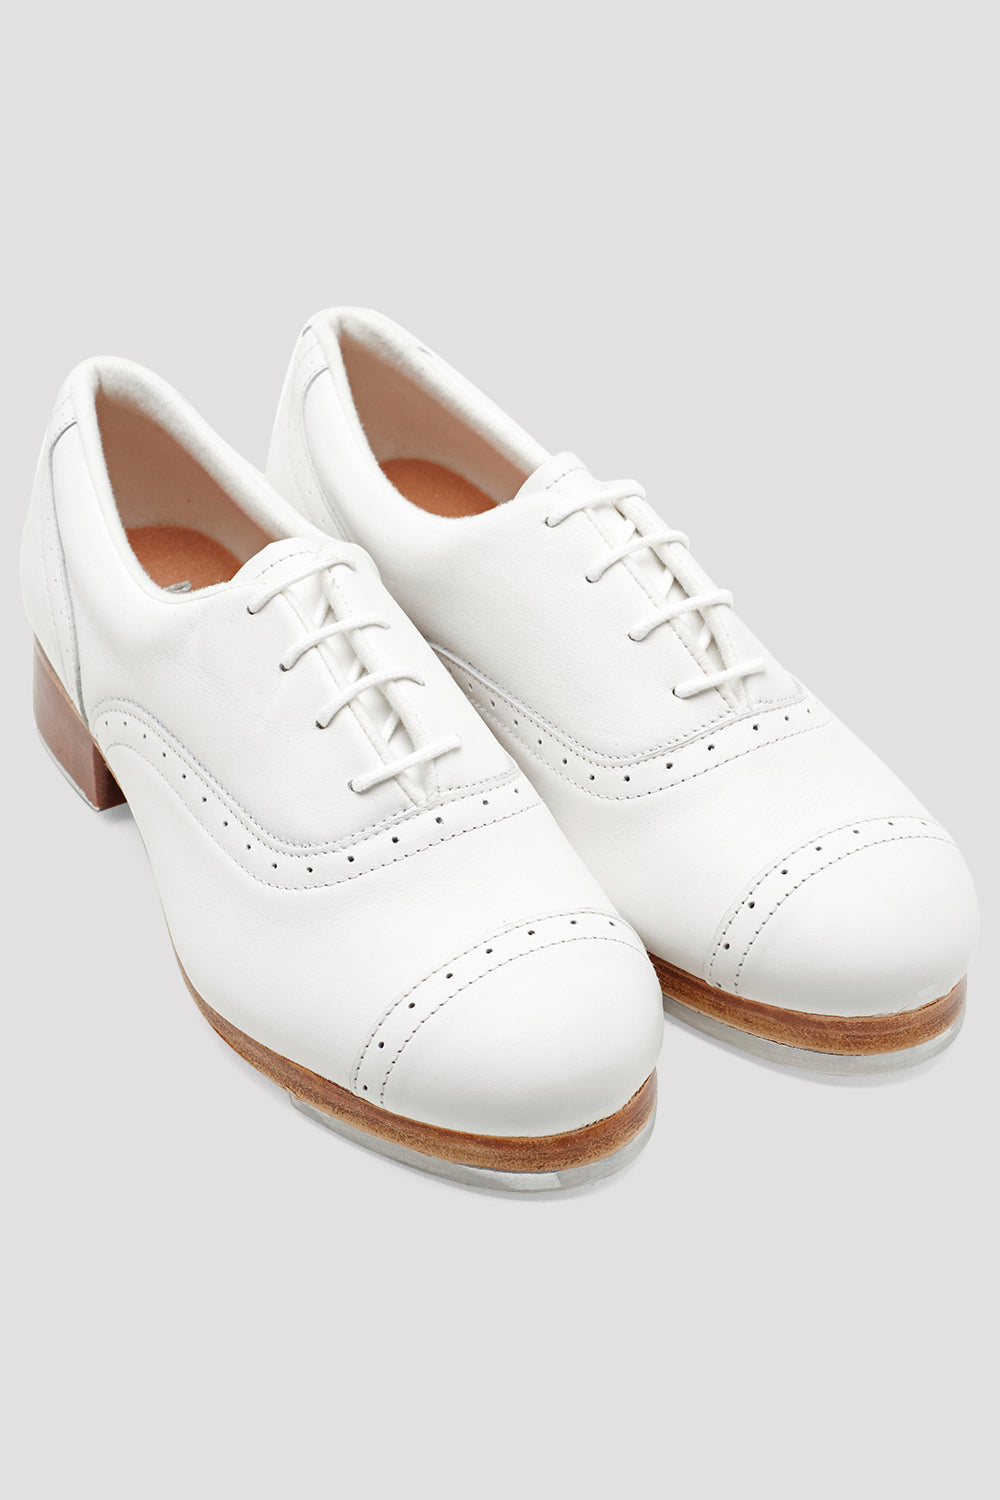 White leather Bloch Ladies Jason Samuels Smith Tap Shoes pair of shoes flatlay